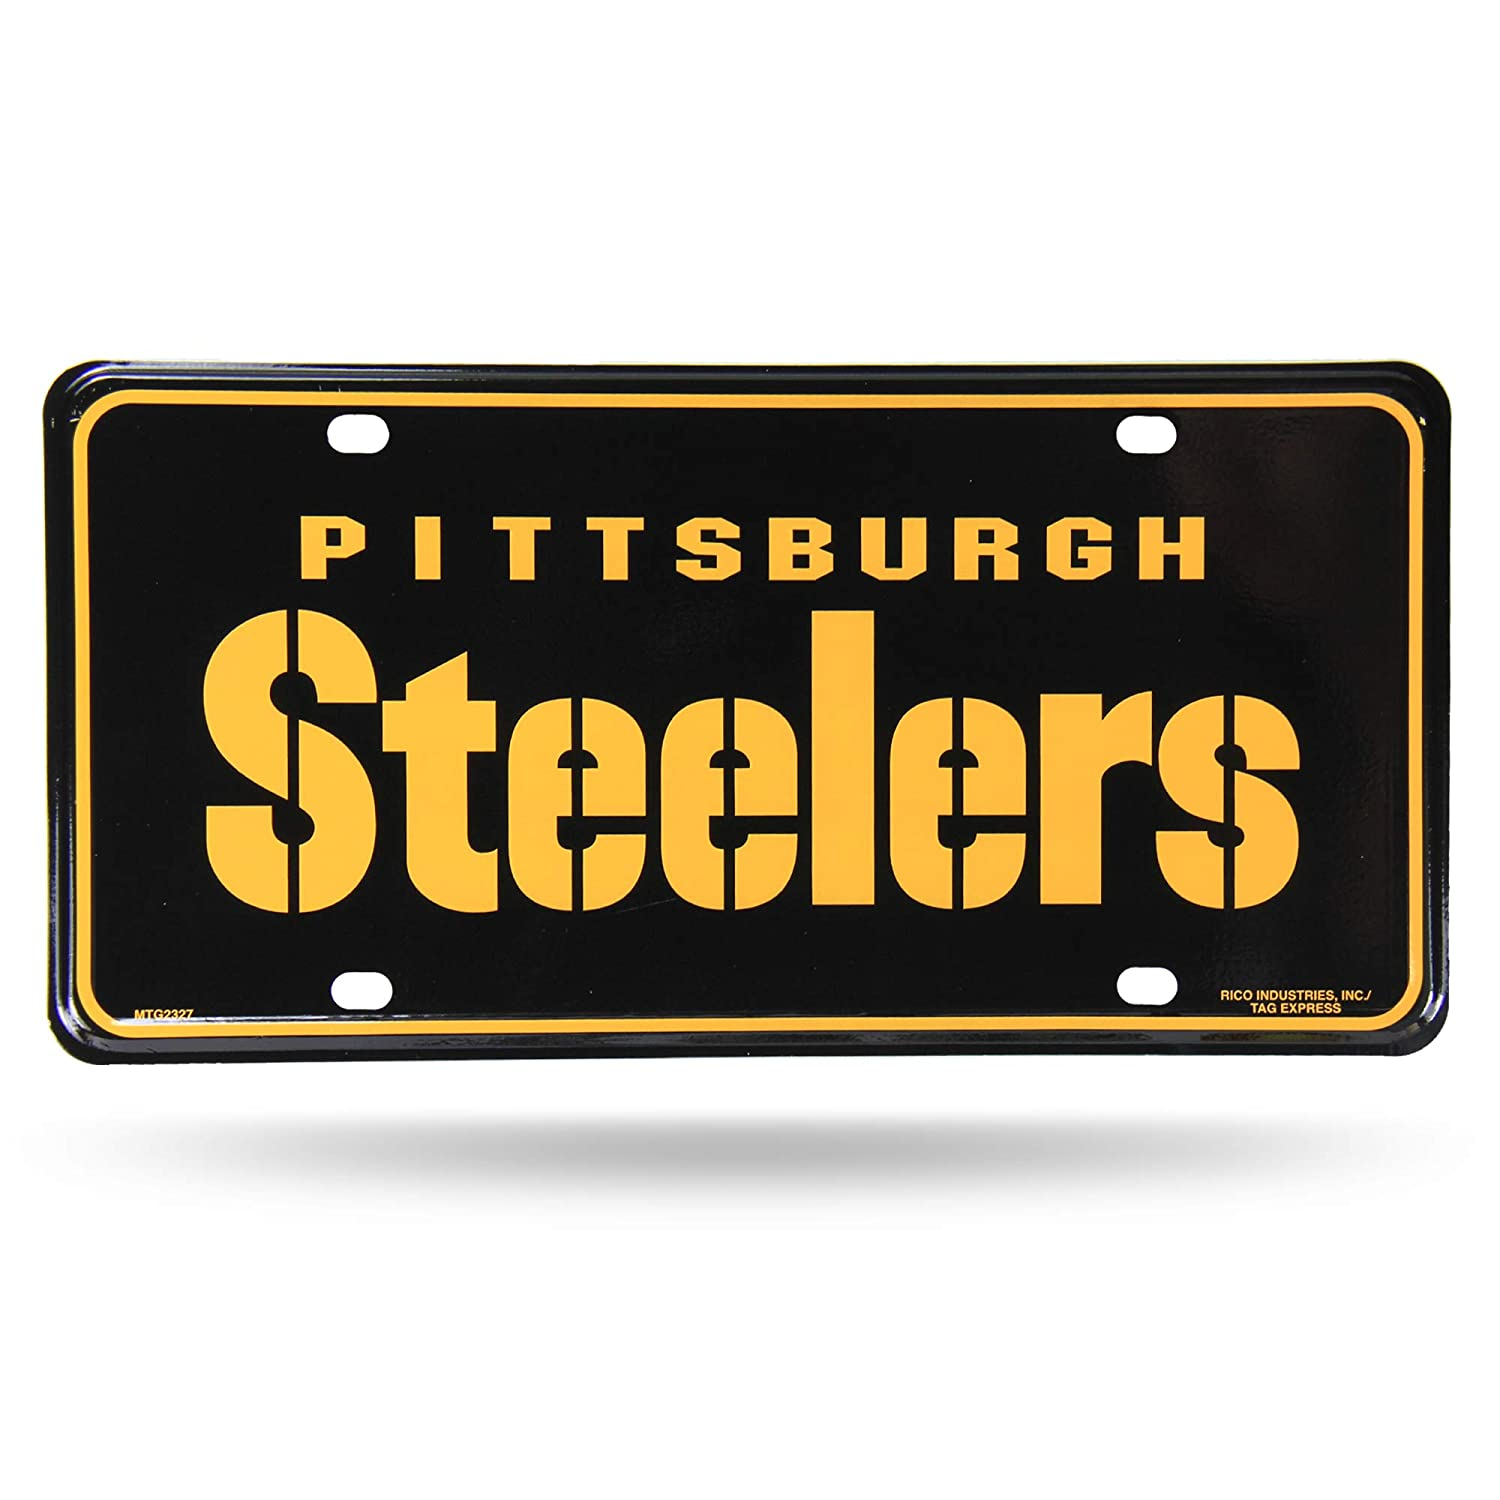 MTG2327 Rico Industries NFL Pittsburgh Steelers Metal License Plate Tag Inc